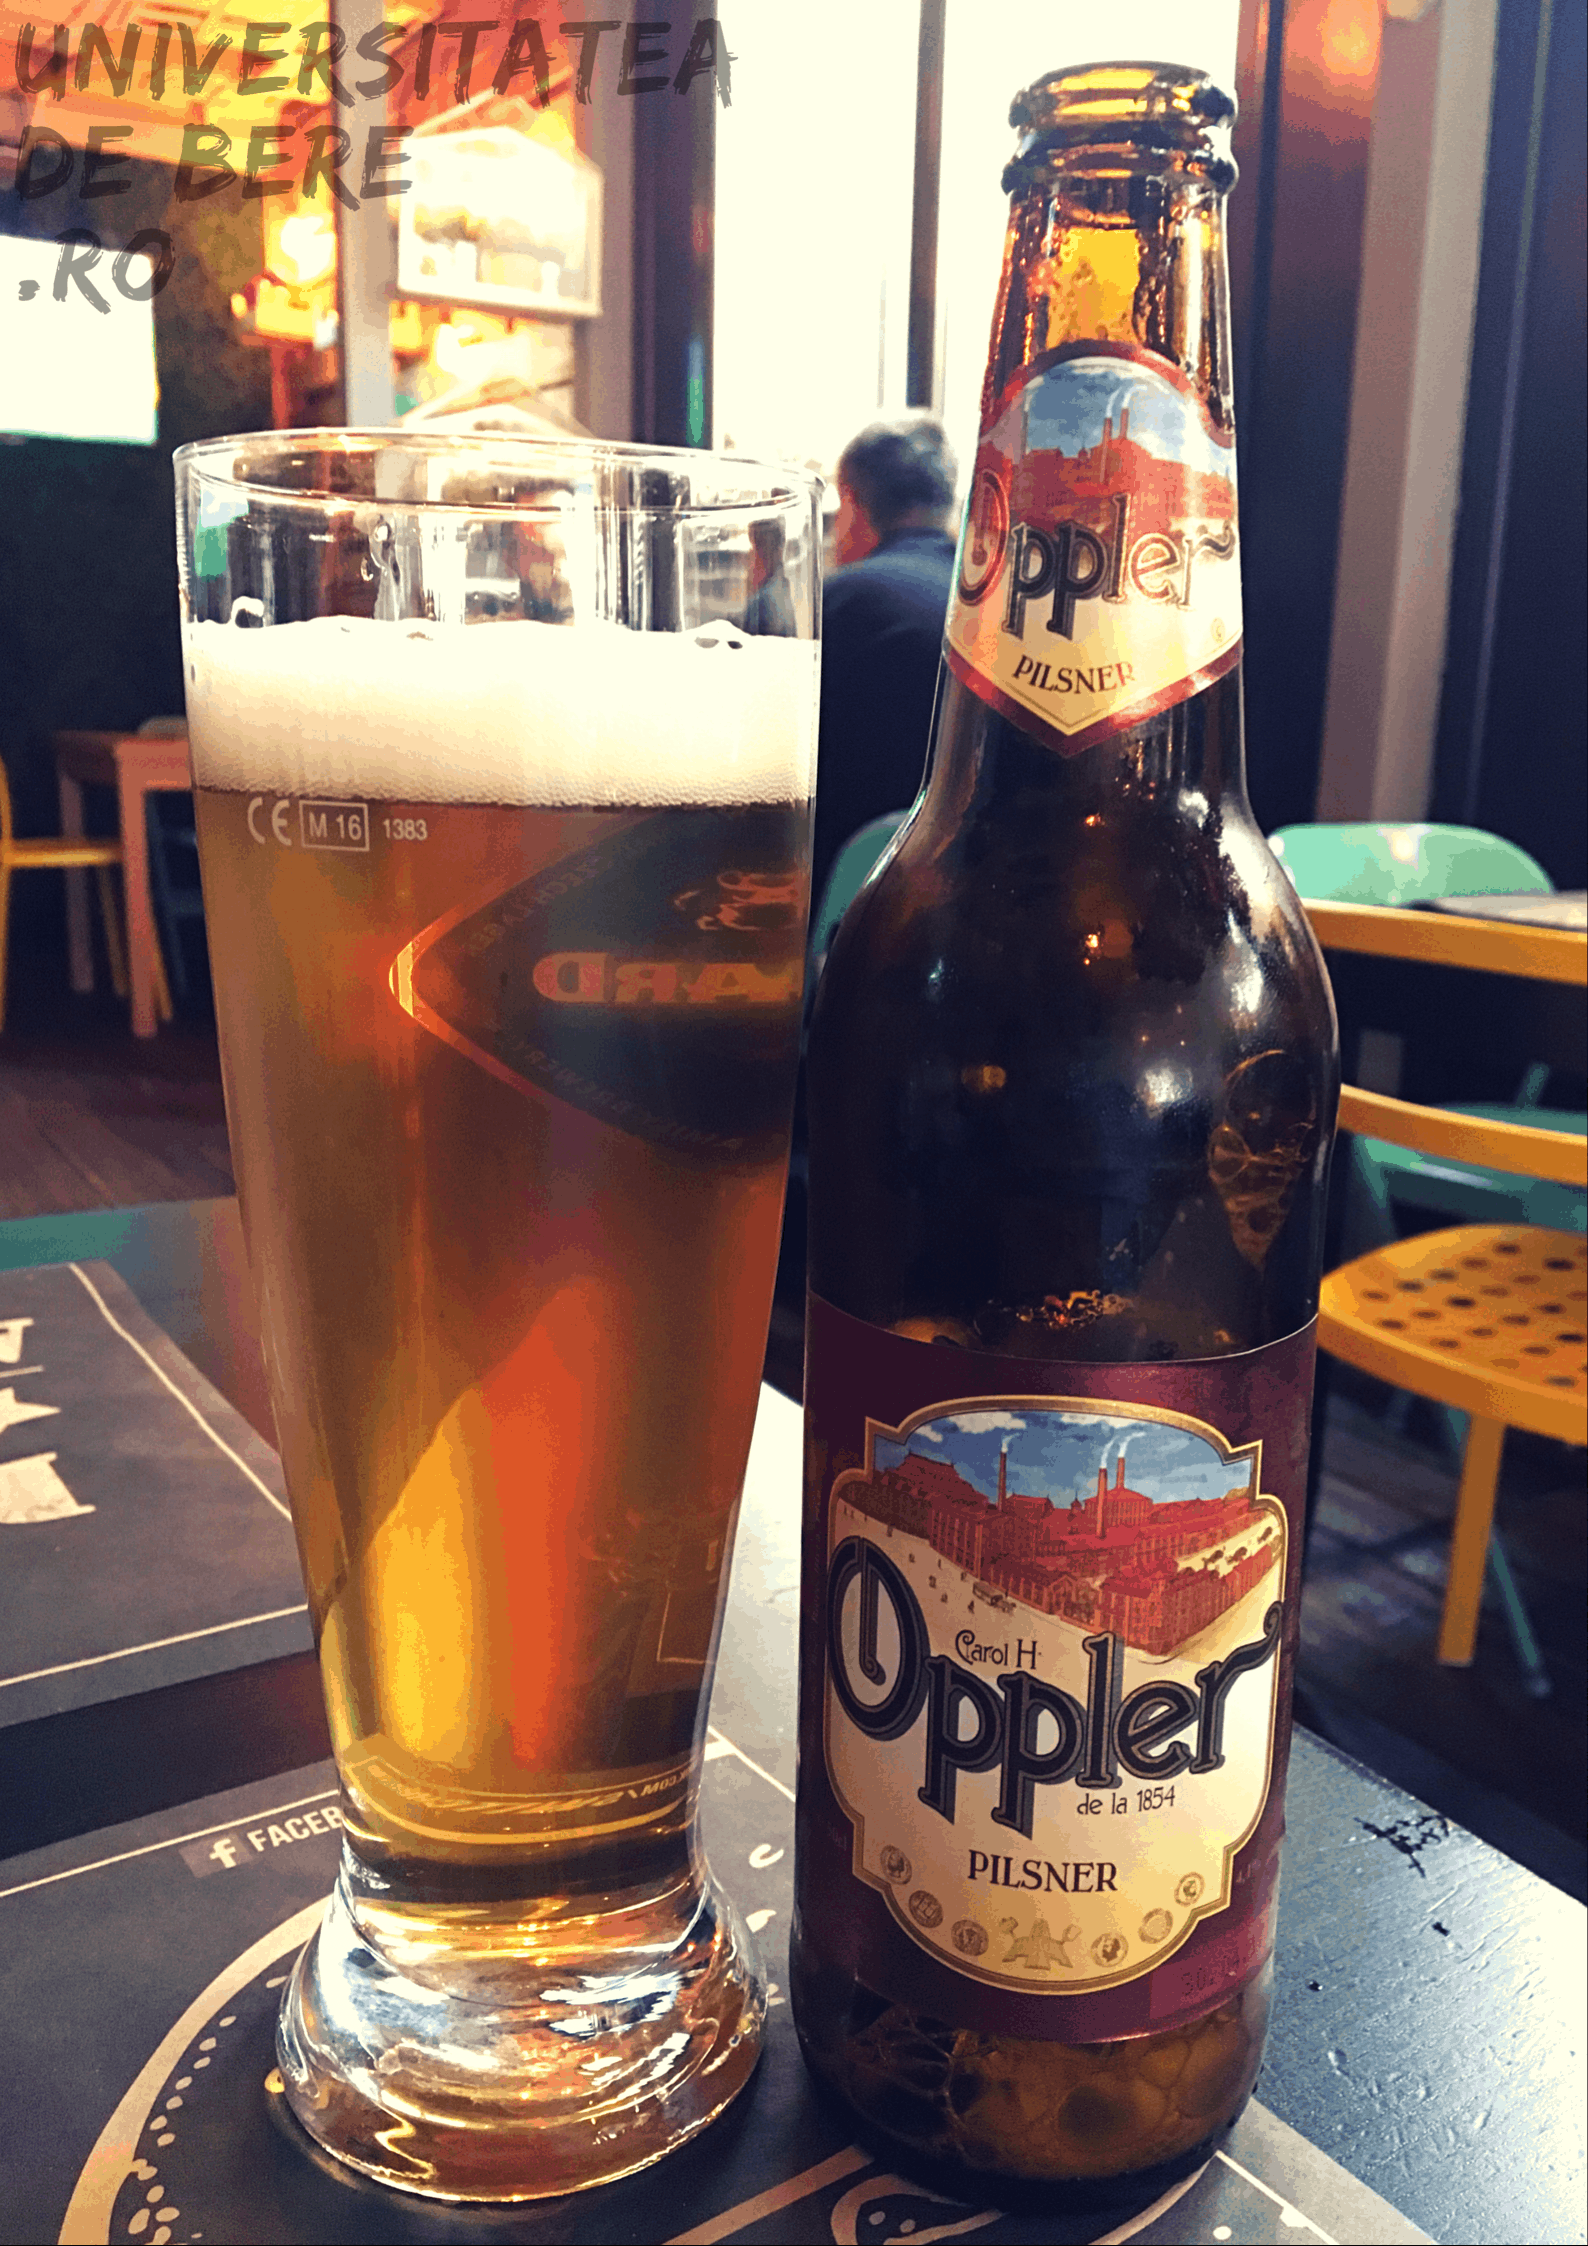 Photo of Oppler Pilsner, ceva nou in meniuri